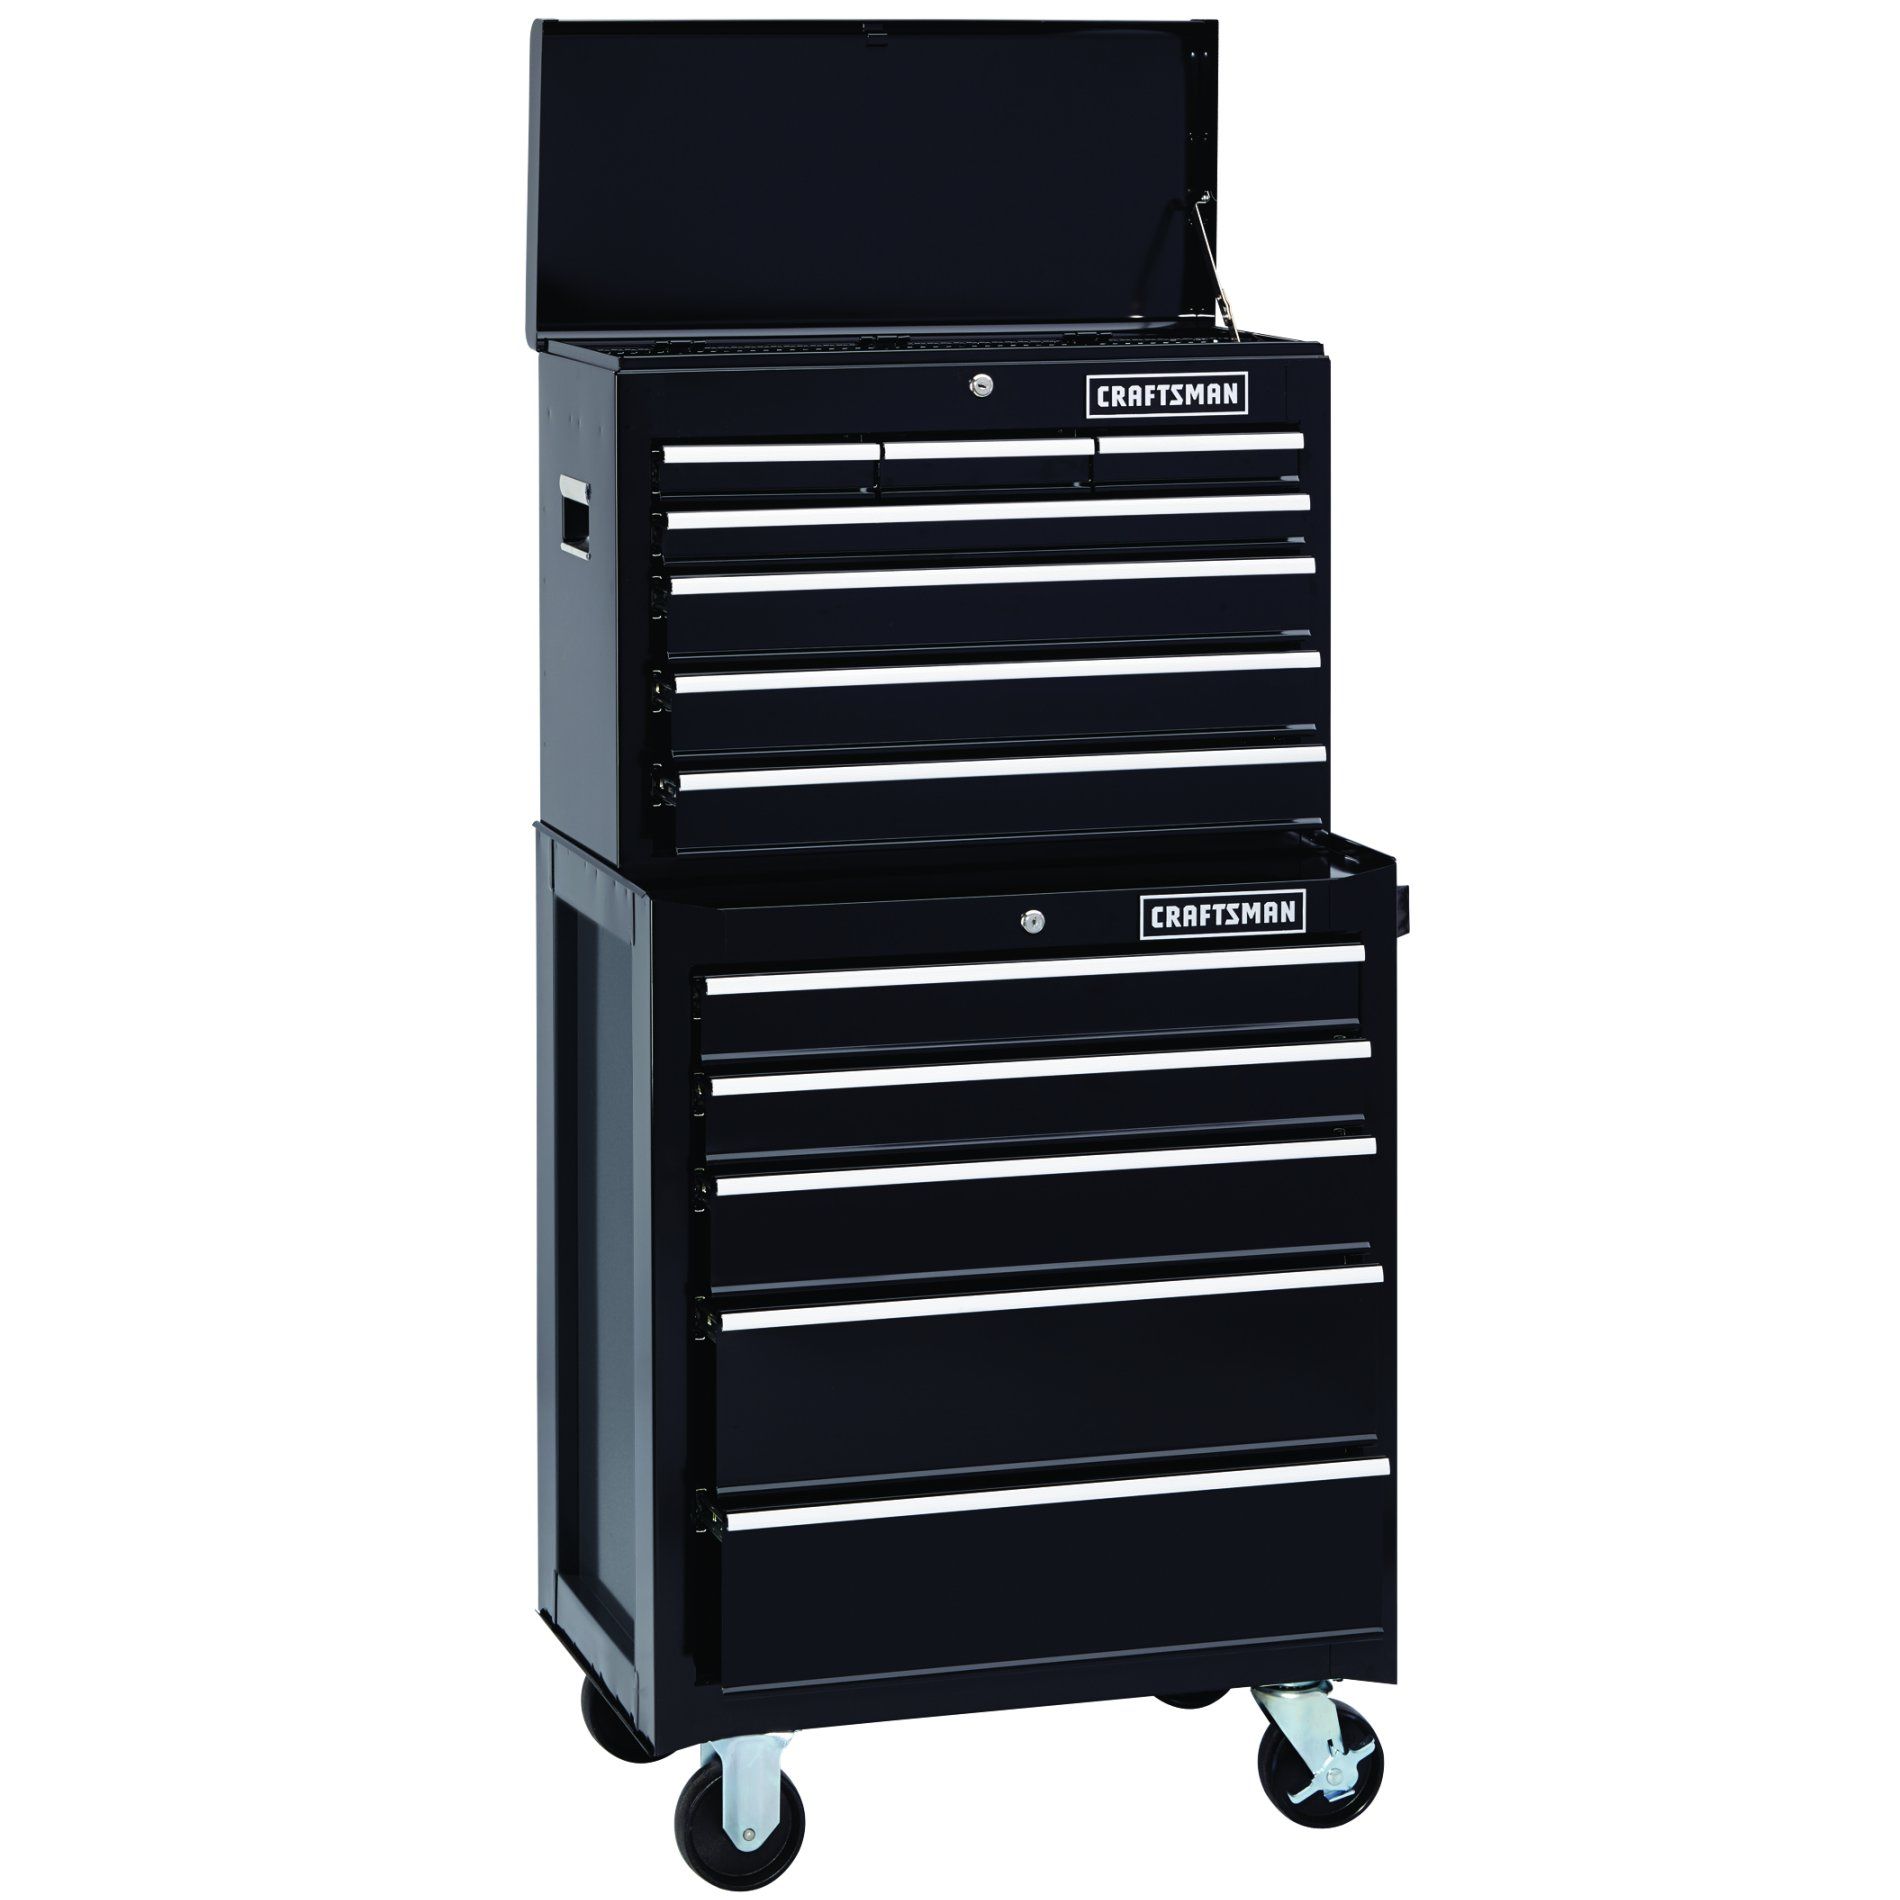 Craftsman 5-Drawer Ball Bearing Rolling Cabinet